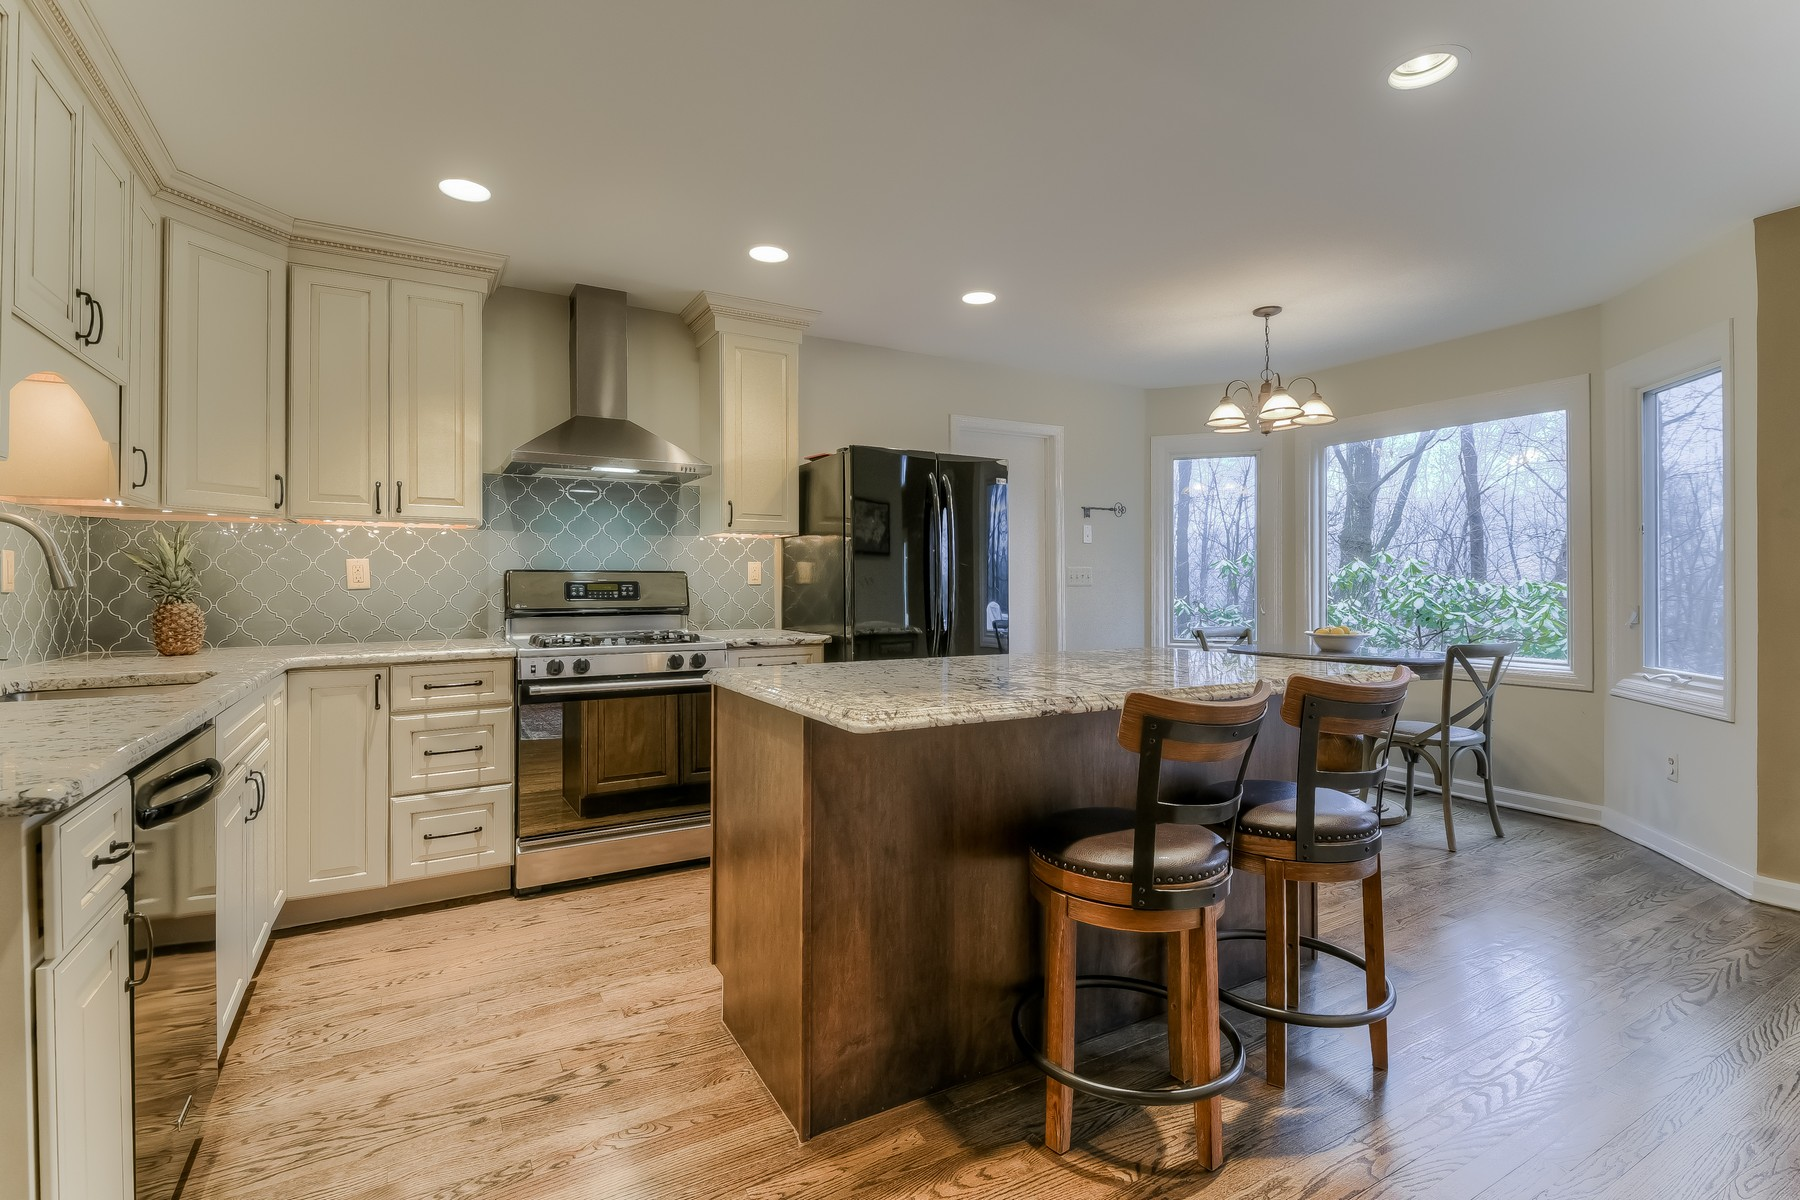 Single Family Home for Sale at Custom Contemporary 155 Sun Valley Way Morris Plains, New Jersey 07950 United States